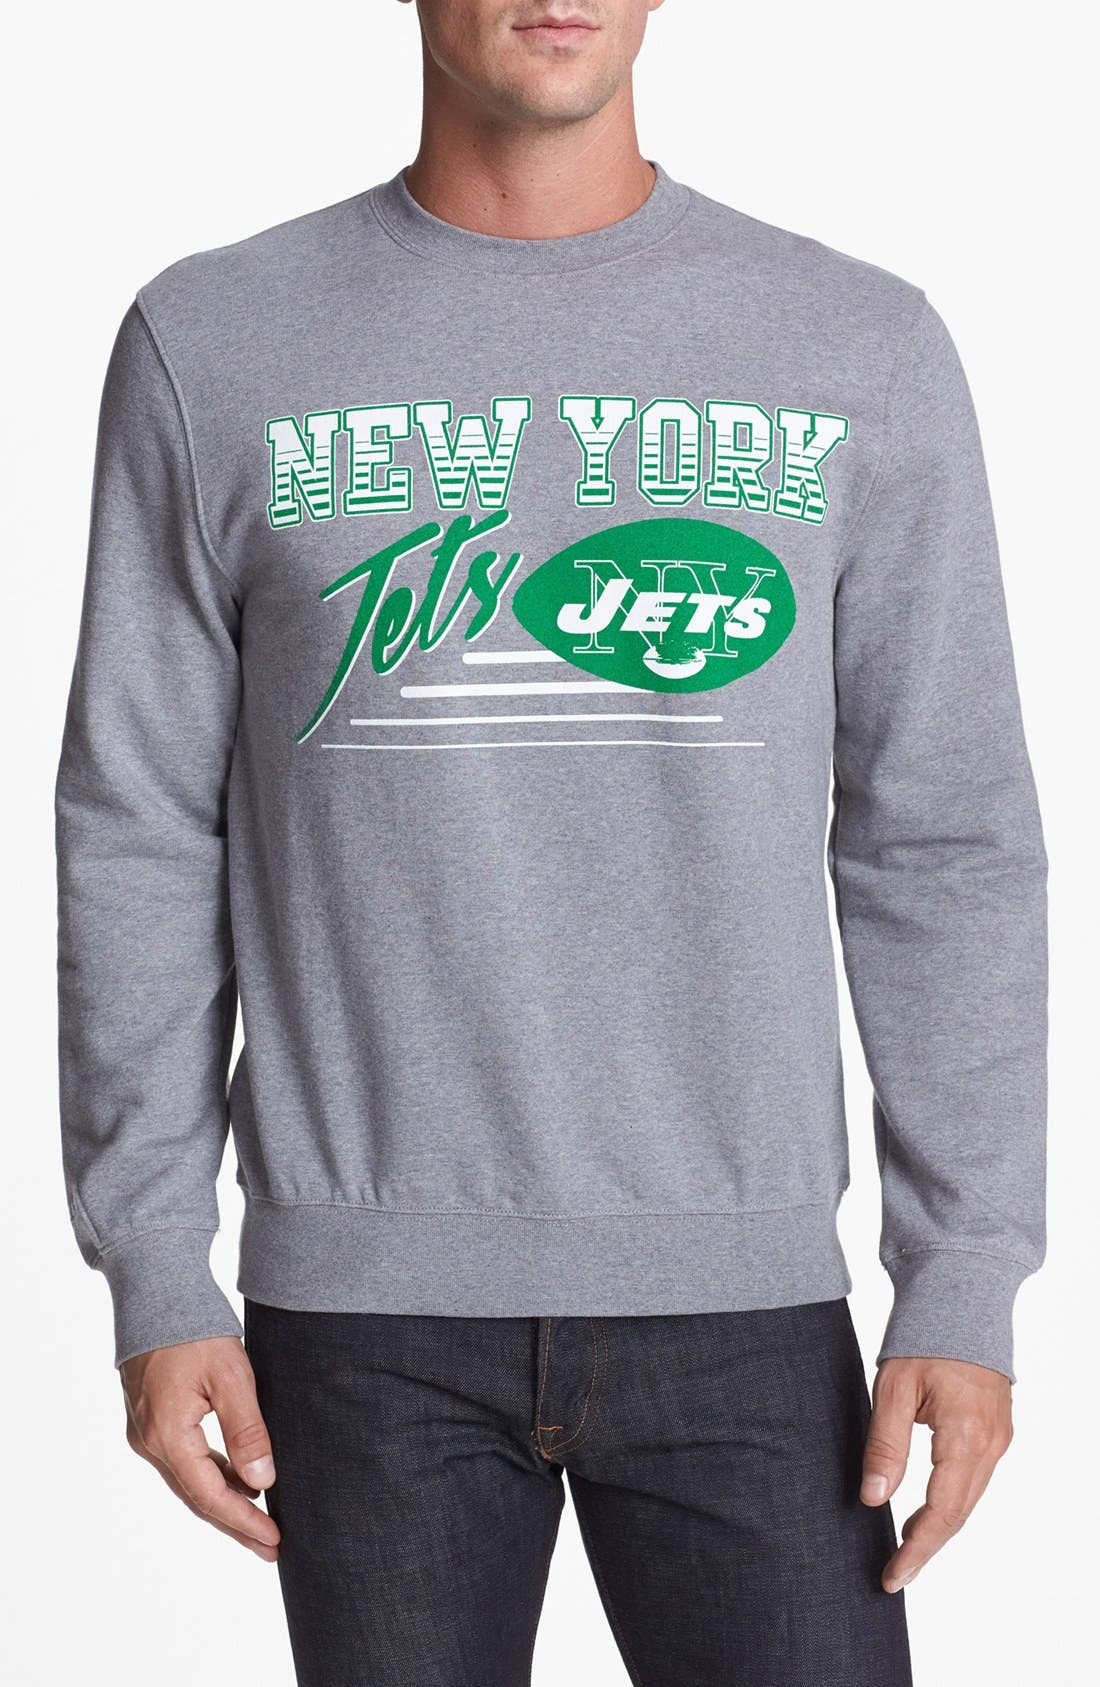 Main Image - Mitchell & Ness 'New York Jets' Sweatshirt